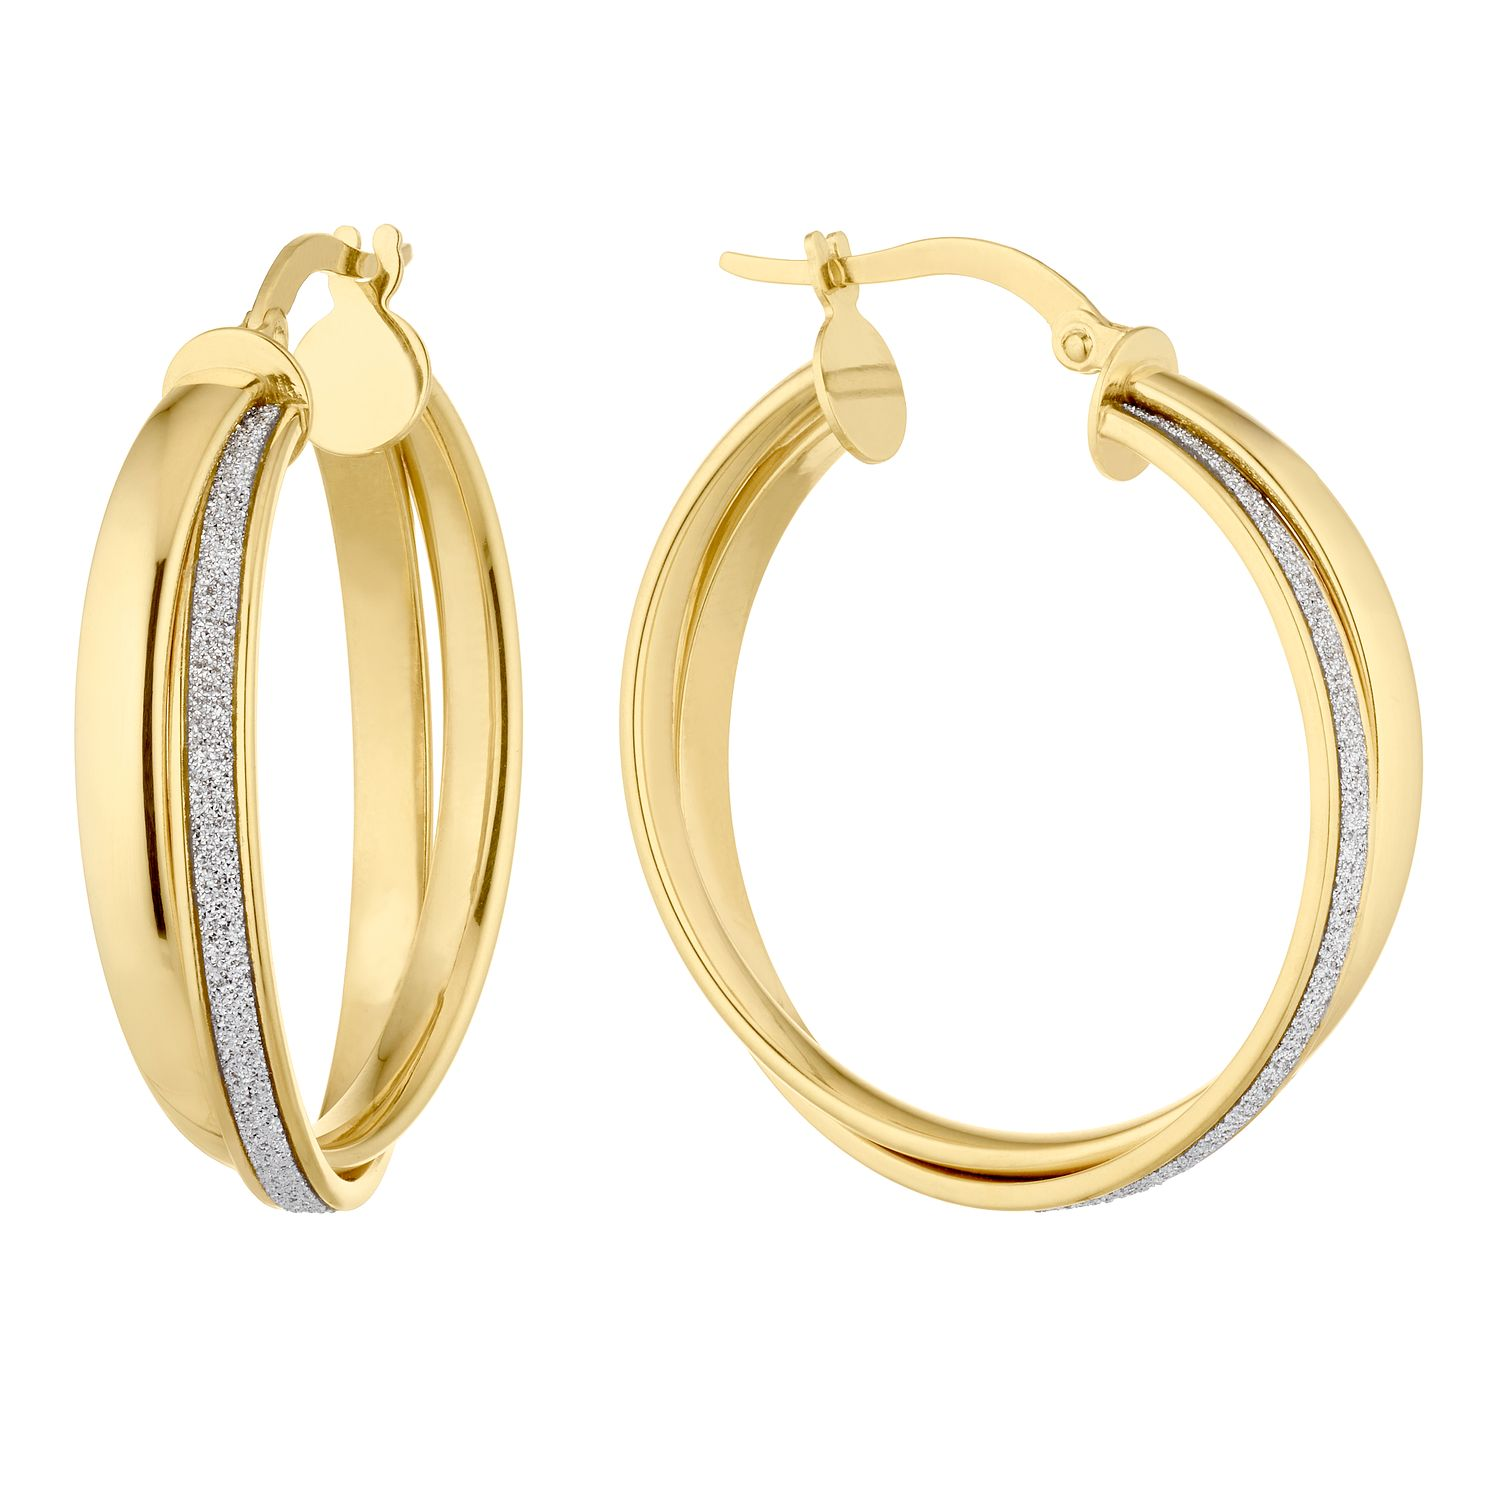 9ct Yellow Gold Sparkle Hoop Earrings - Product number 4897188